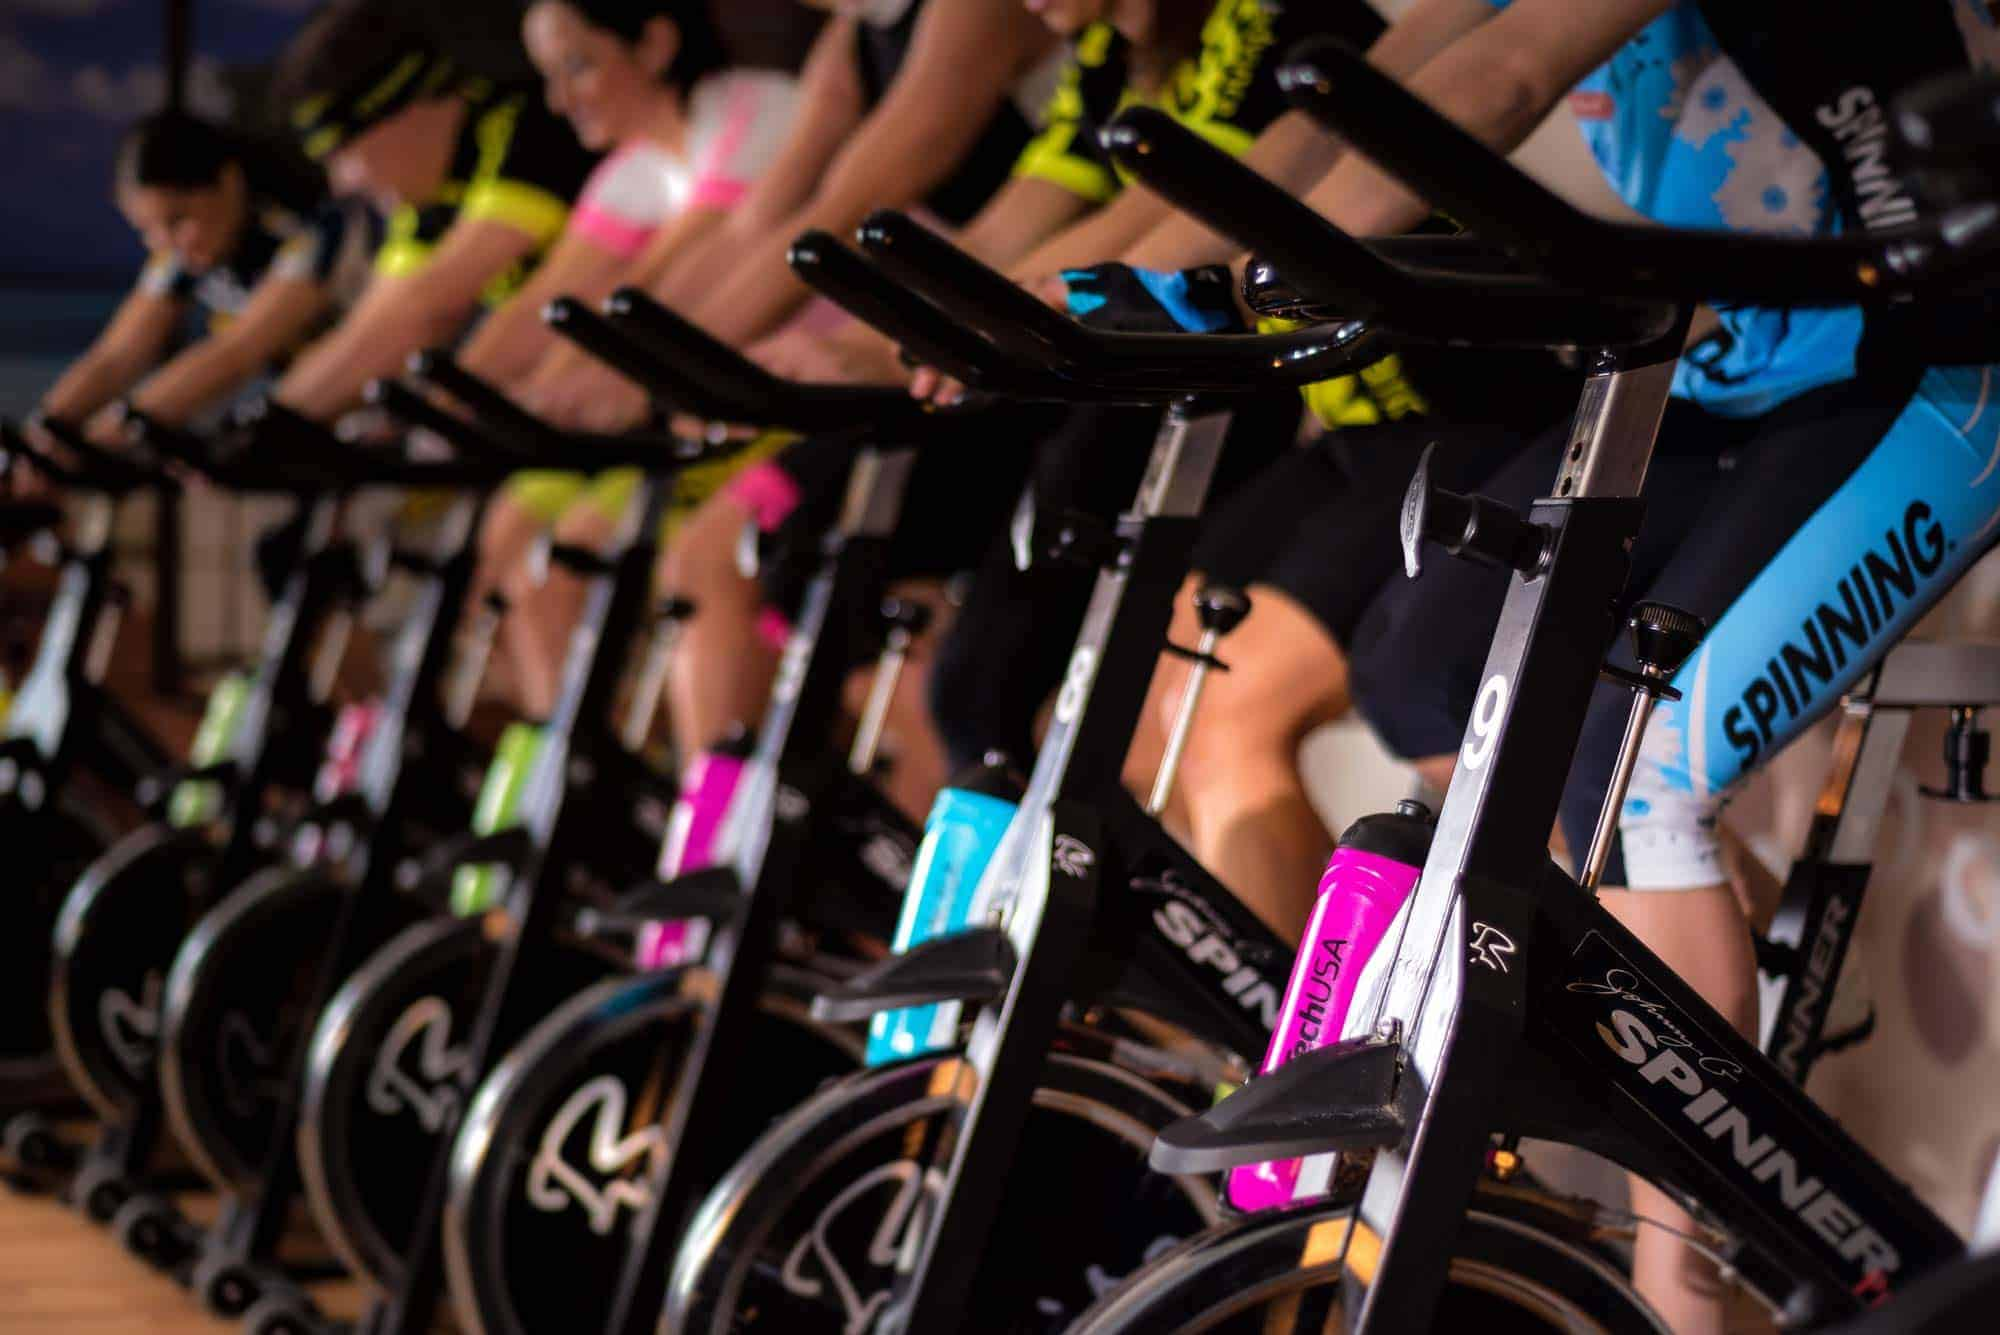 Spinning fitness class